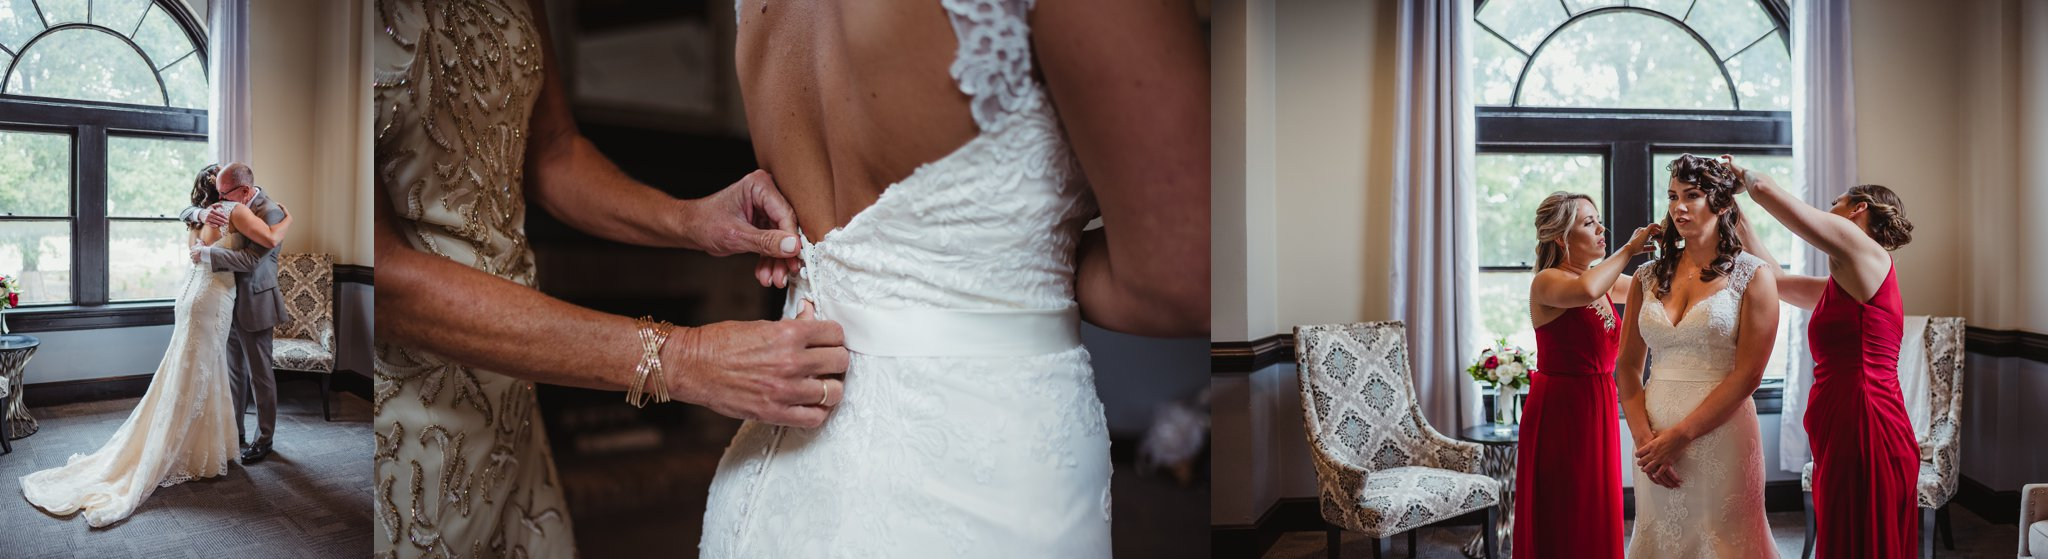 Wedding details include the lace wedding gown, the bride getting ready, and a father's first look at his daughter before the wedding in downtown Raleigh, photos by Rose Trail Images.